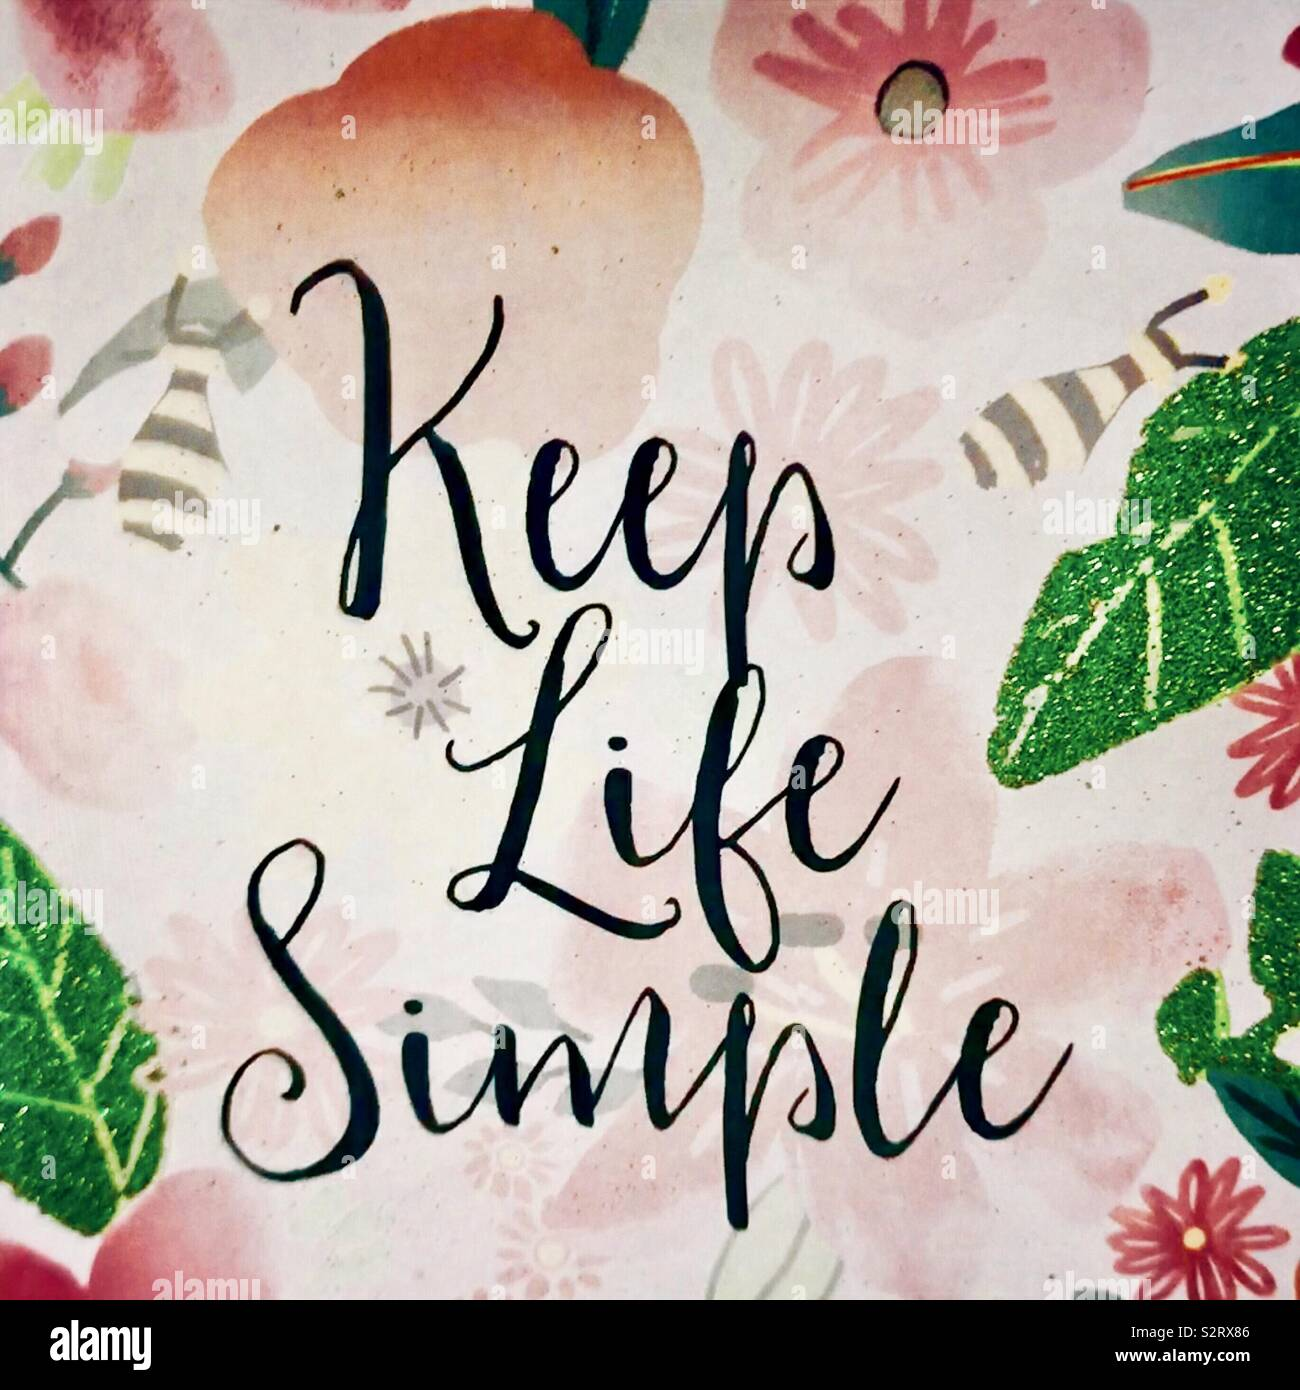 Keep Life Simple Wooden Saying And Quote Displayed With Green Leaves Honey Bees And Flowers Stock Photo Alamy